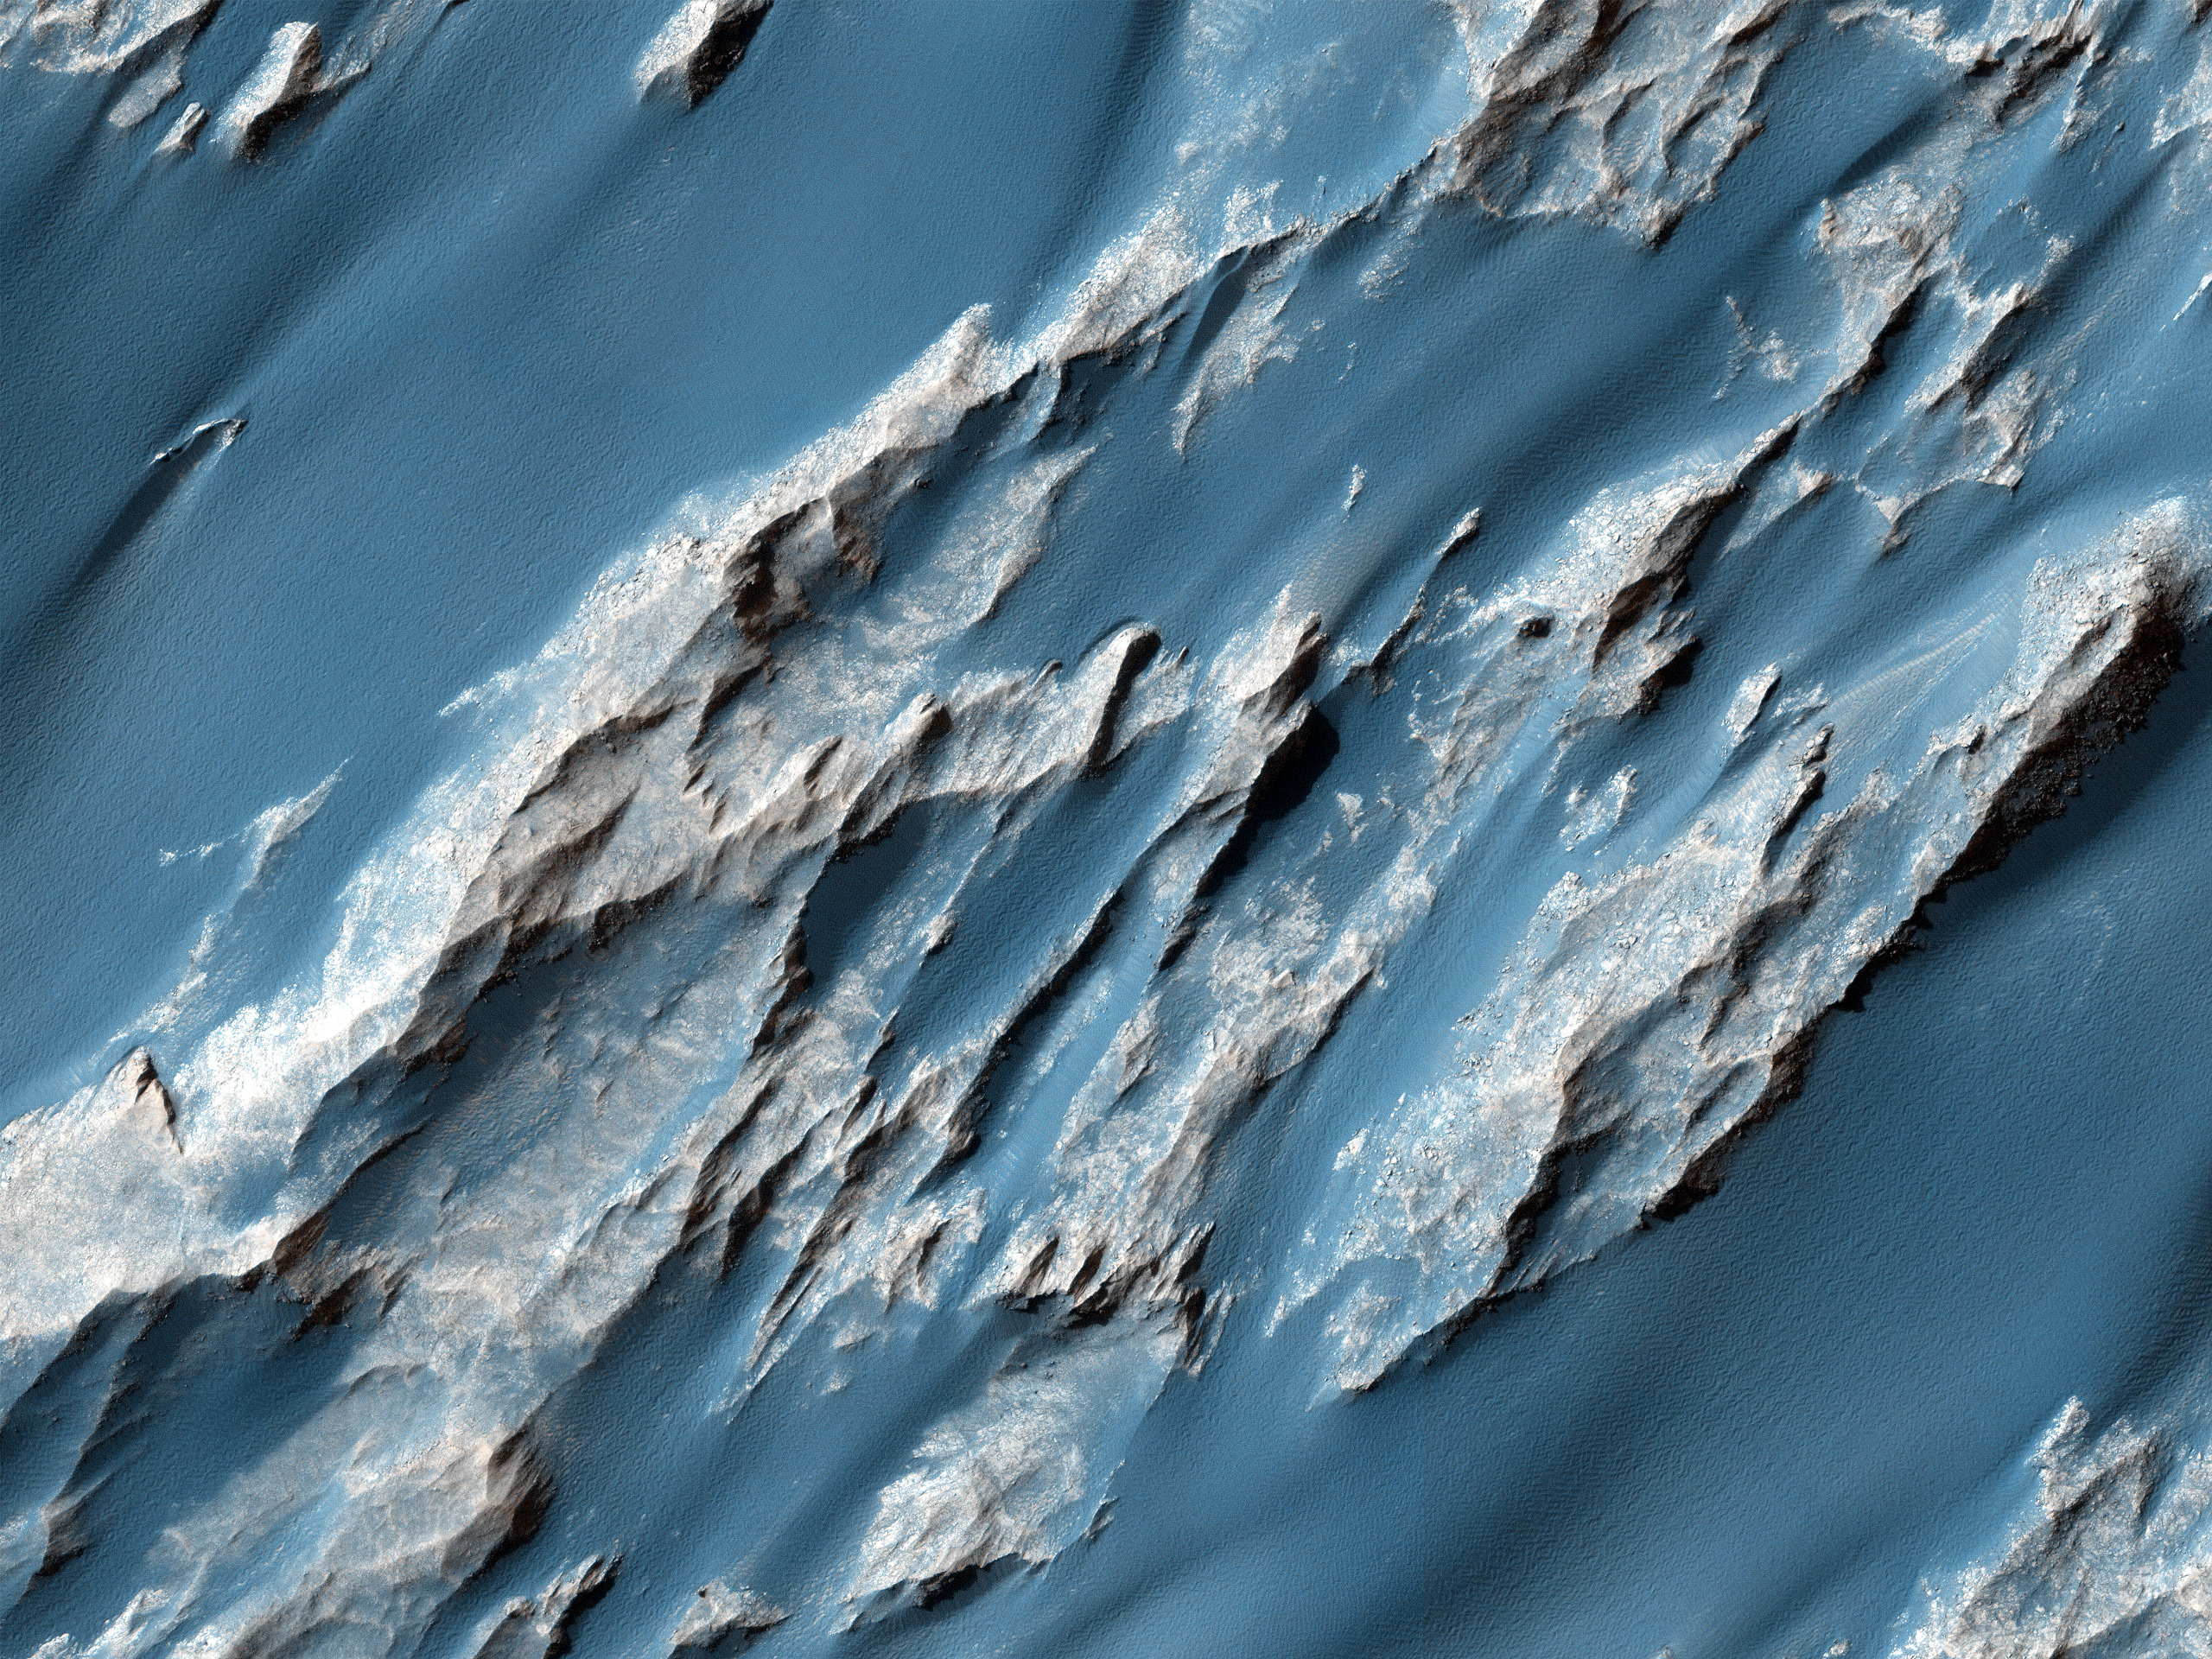 Hydrated Sulfate Landslides in Ophir Chasma